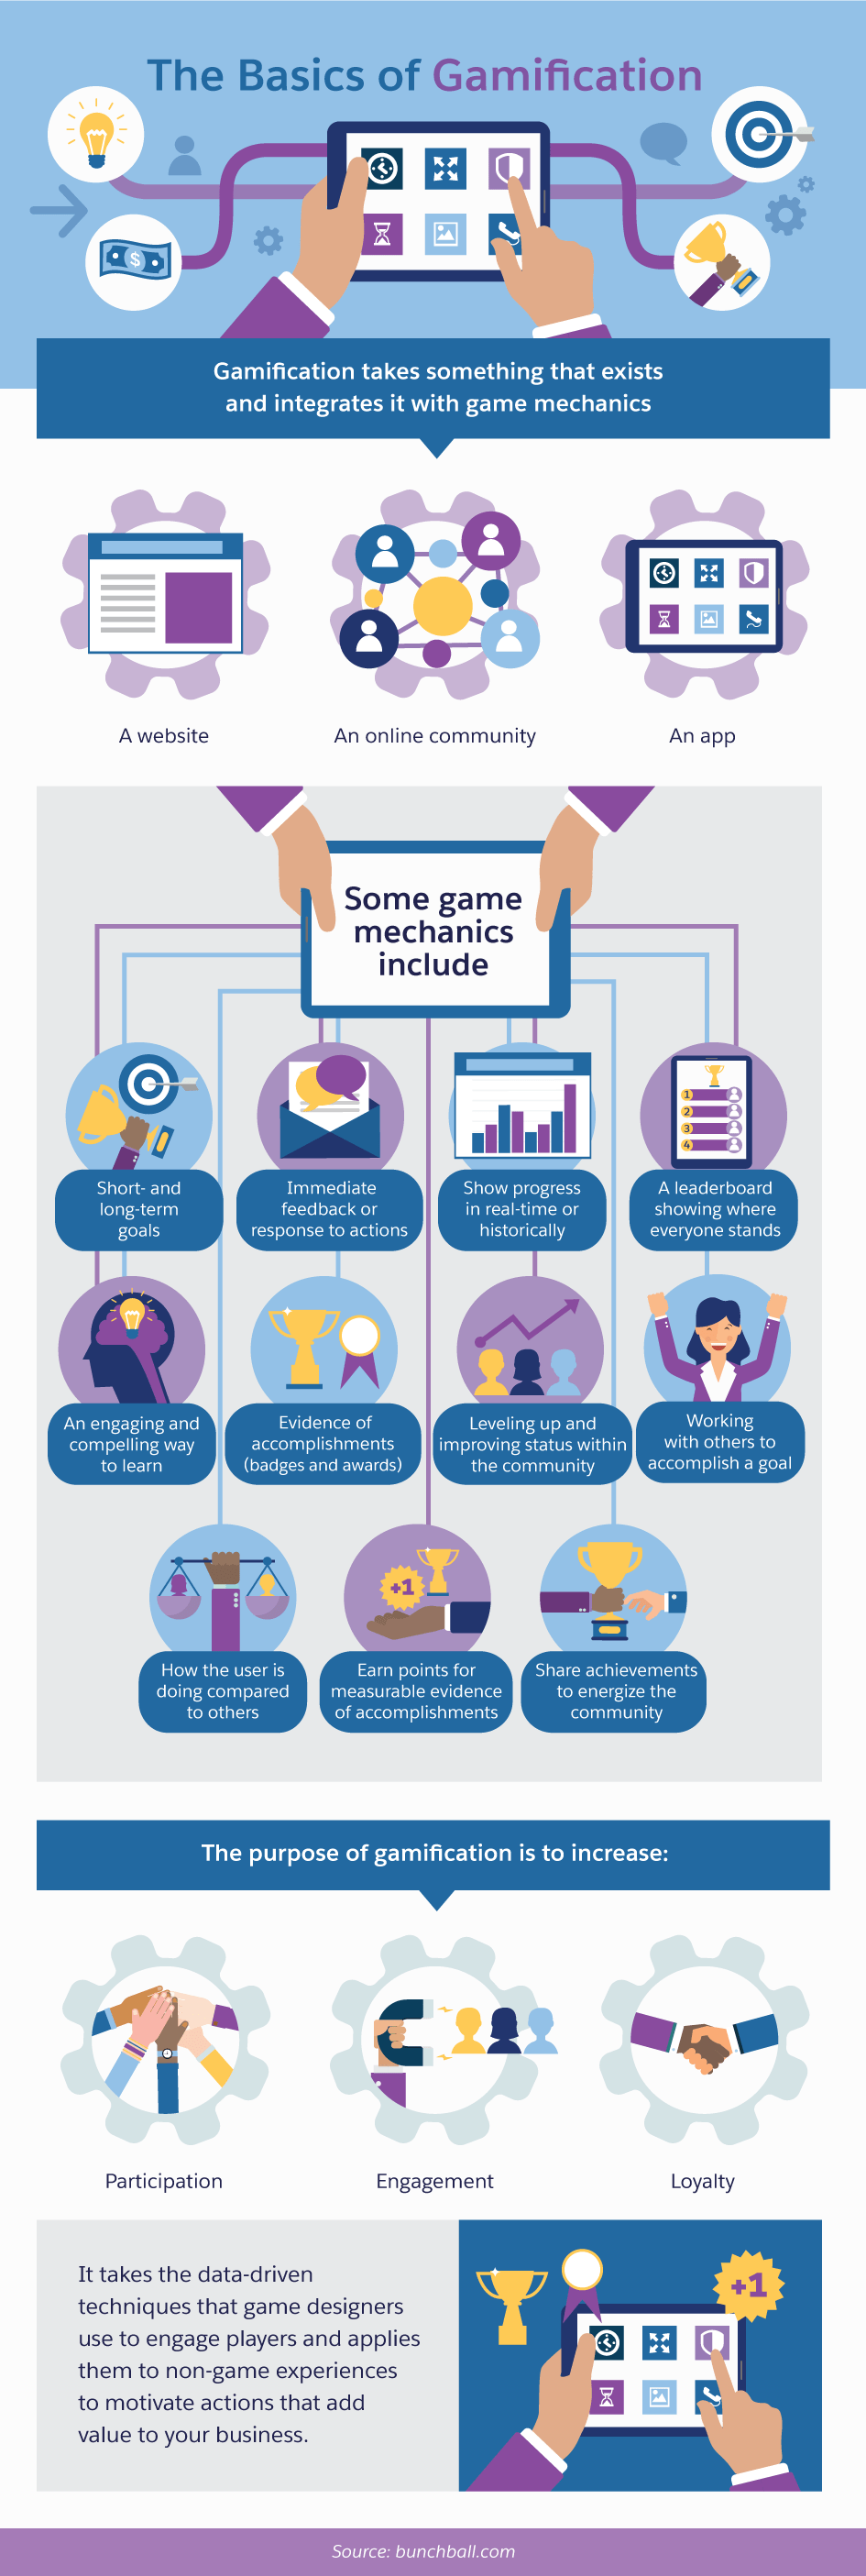 The Basics of Gamification